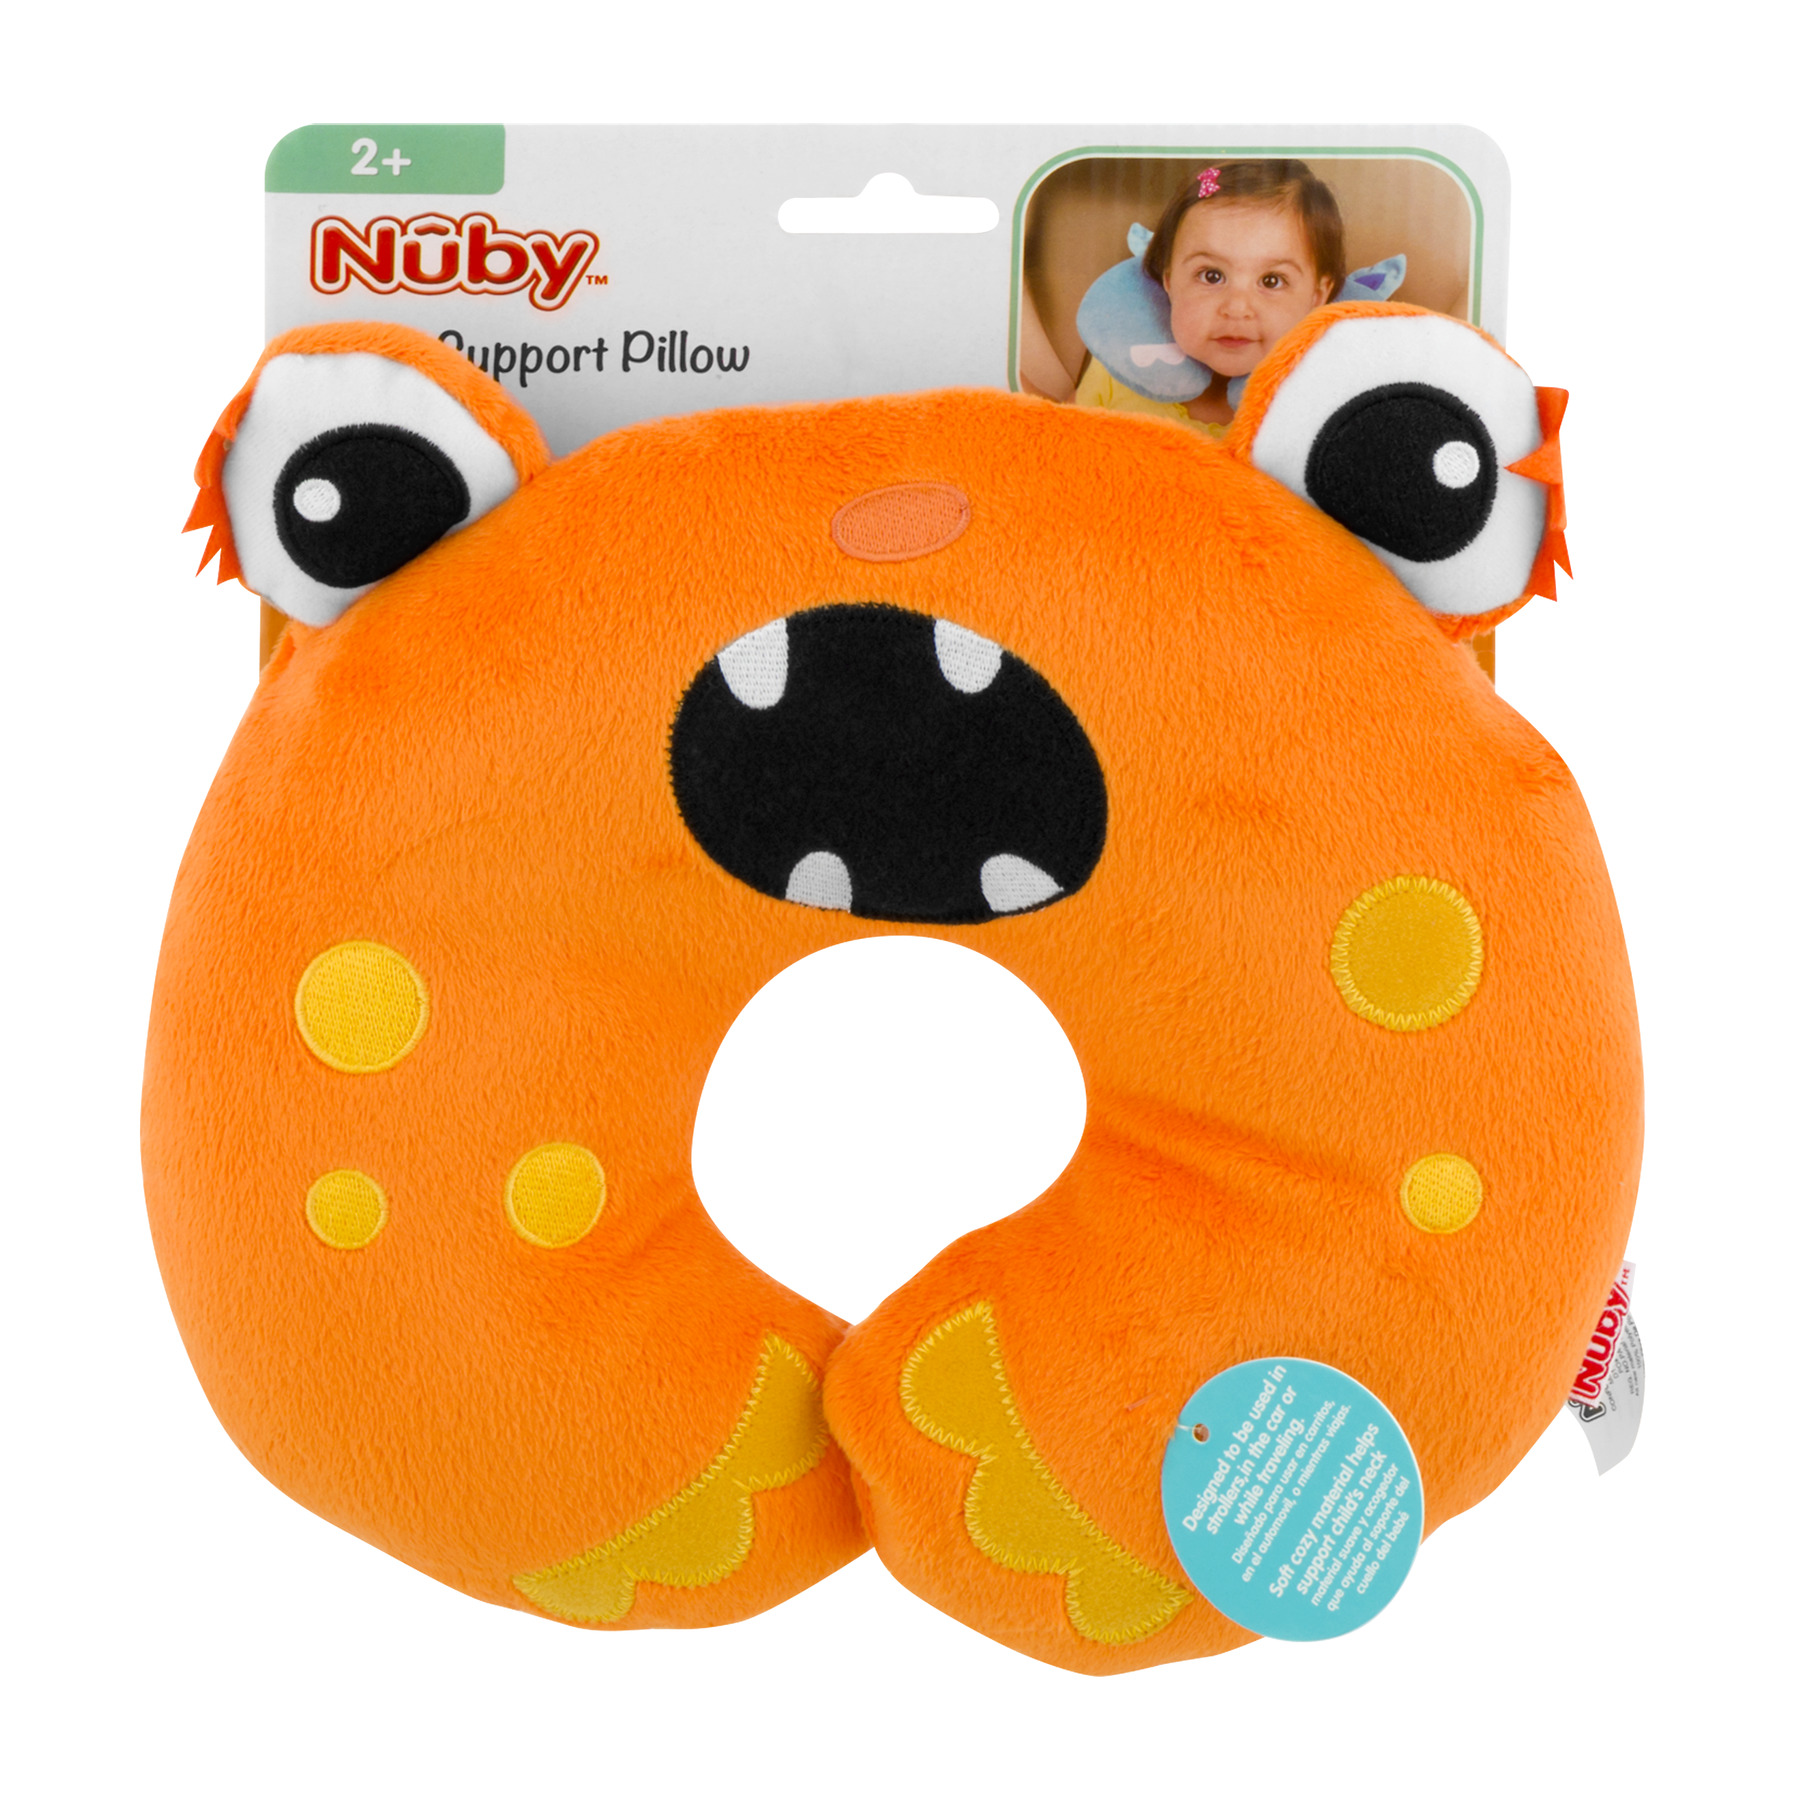 Nuby Neck Support Pillow, 1.0 CT by Nuby